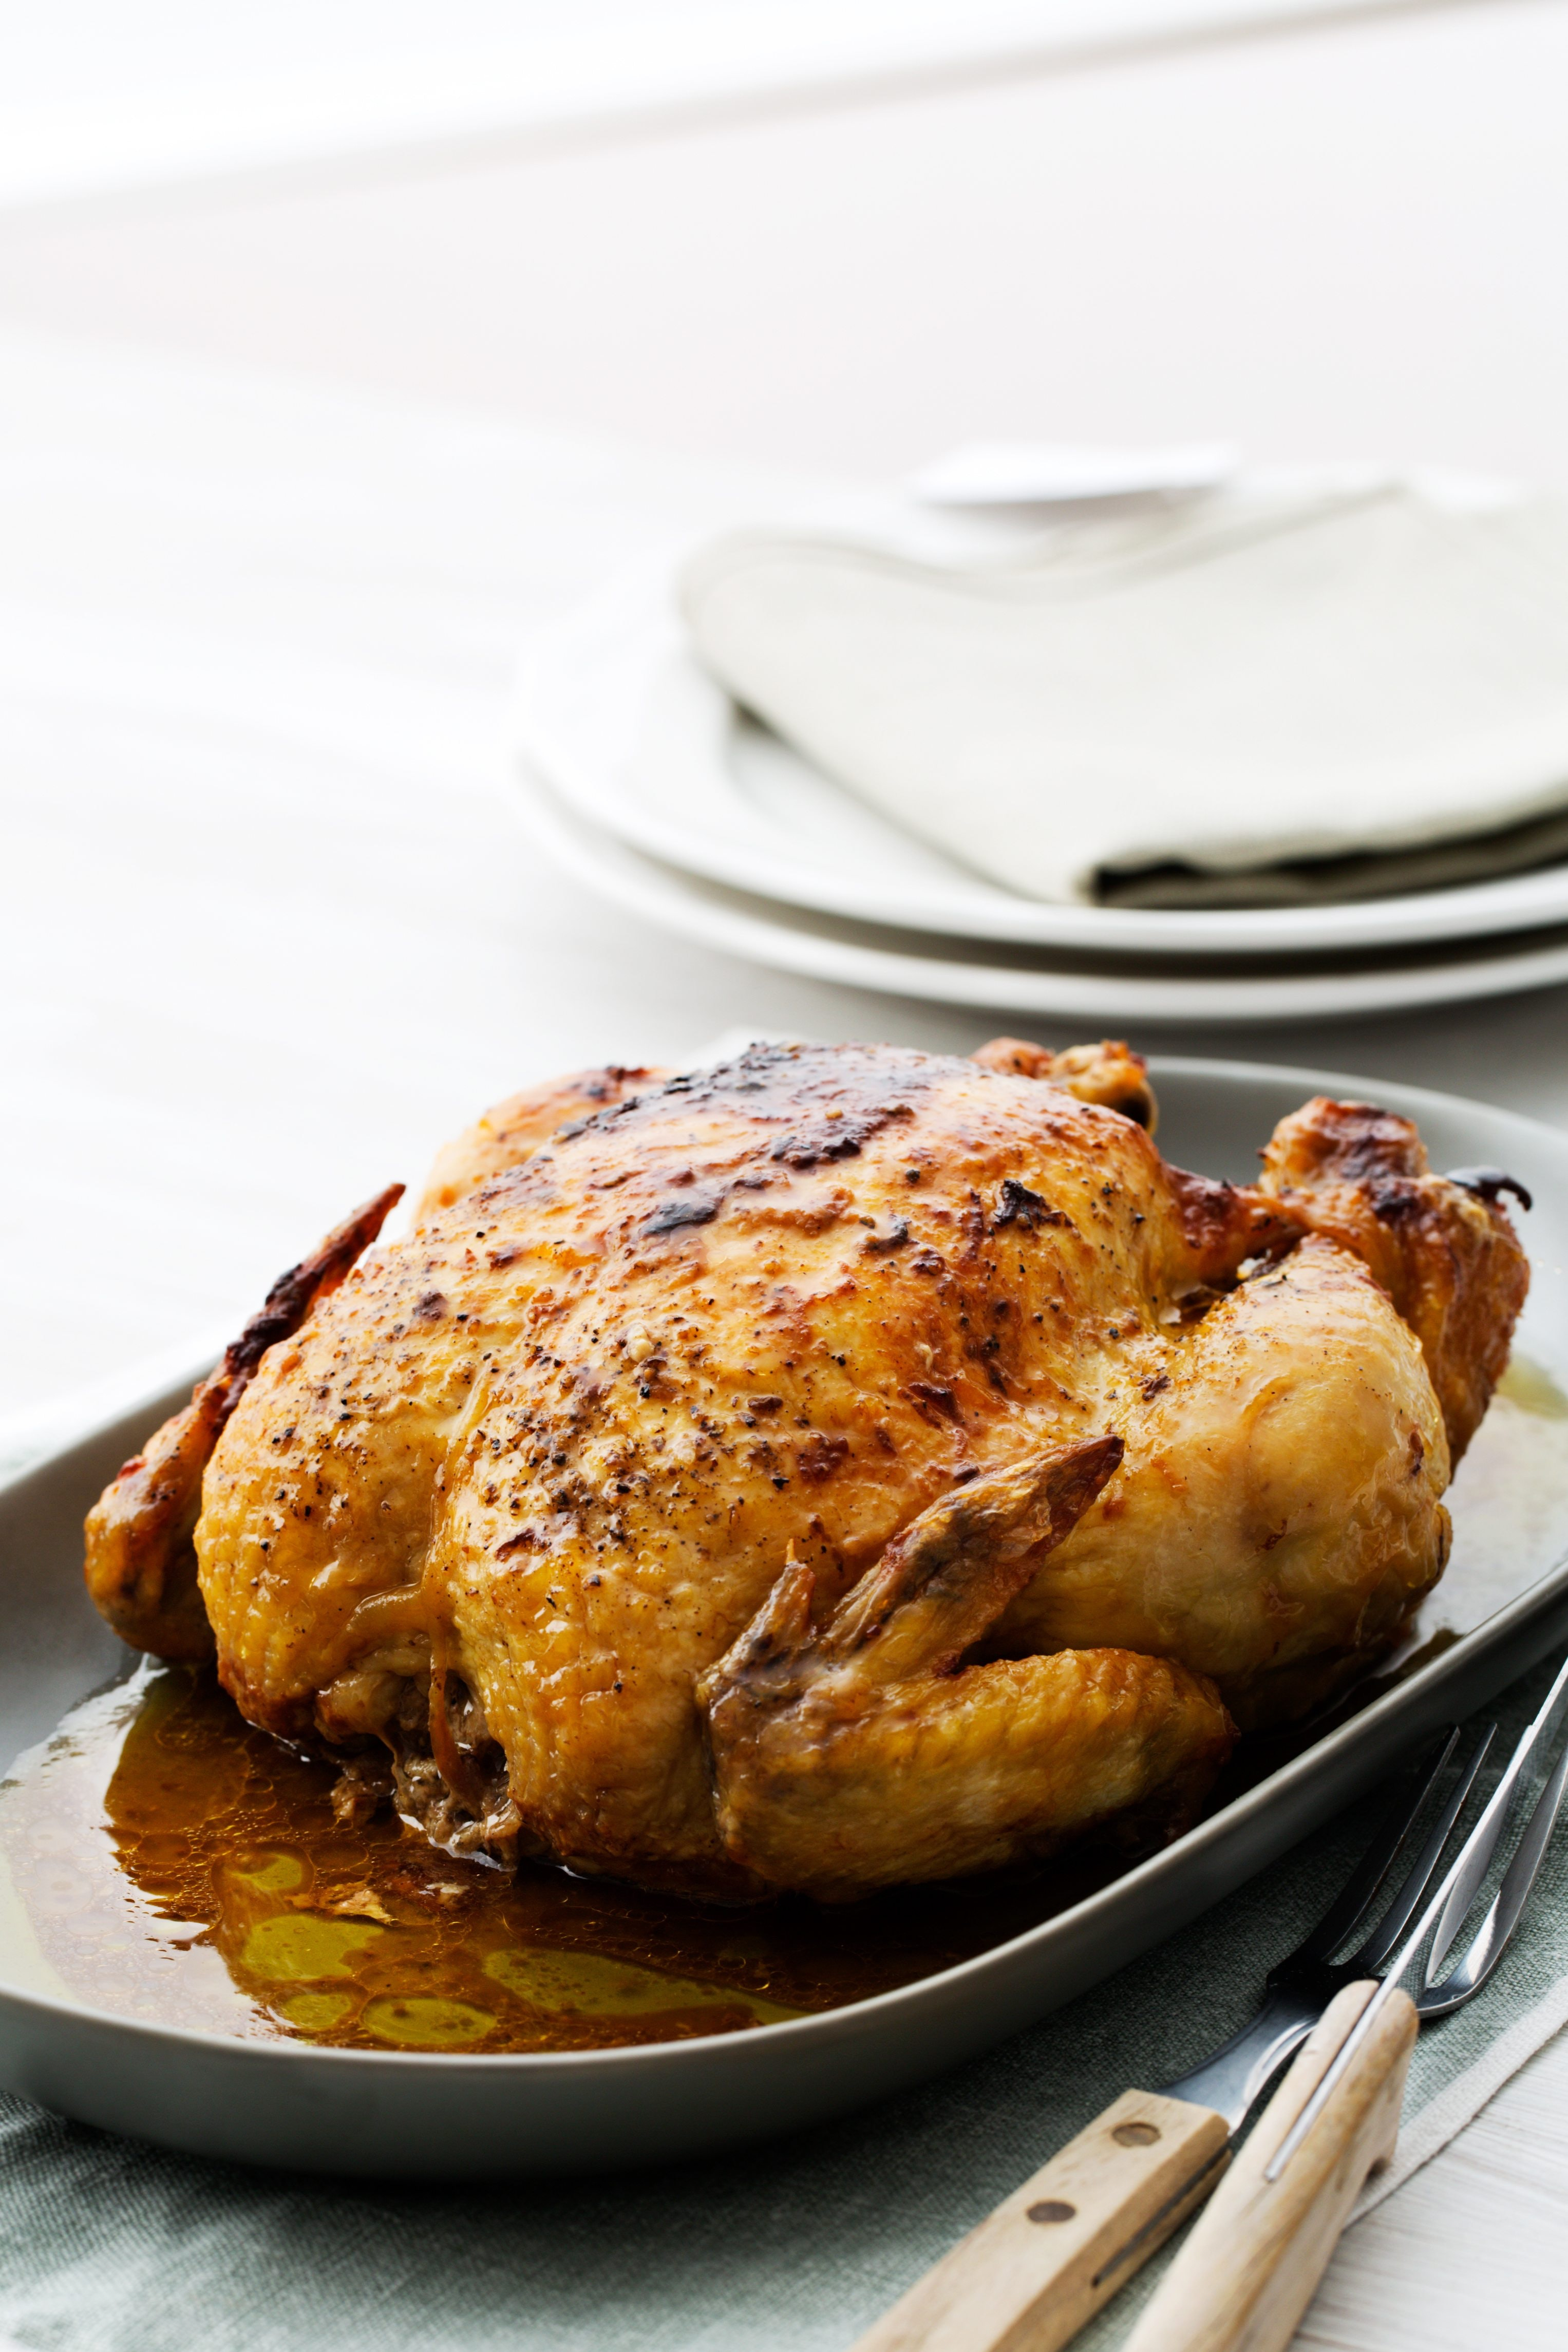 How to cook chicken in the oven bits and pieces that you need for this and generally how